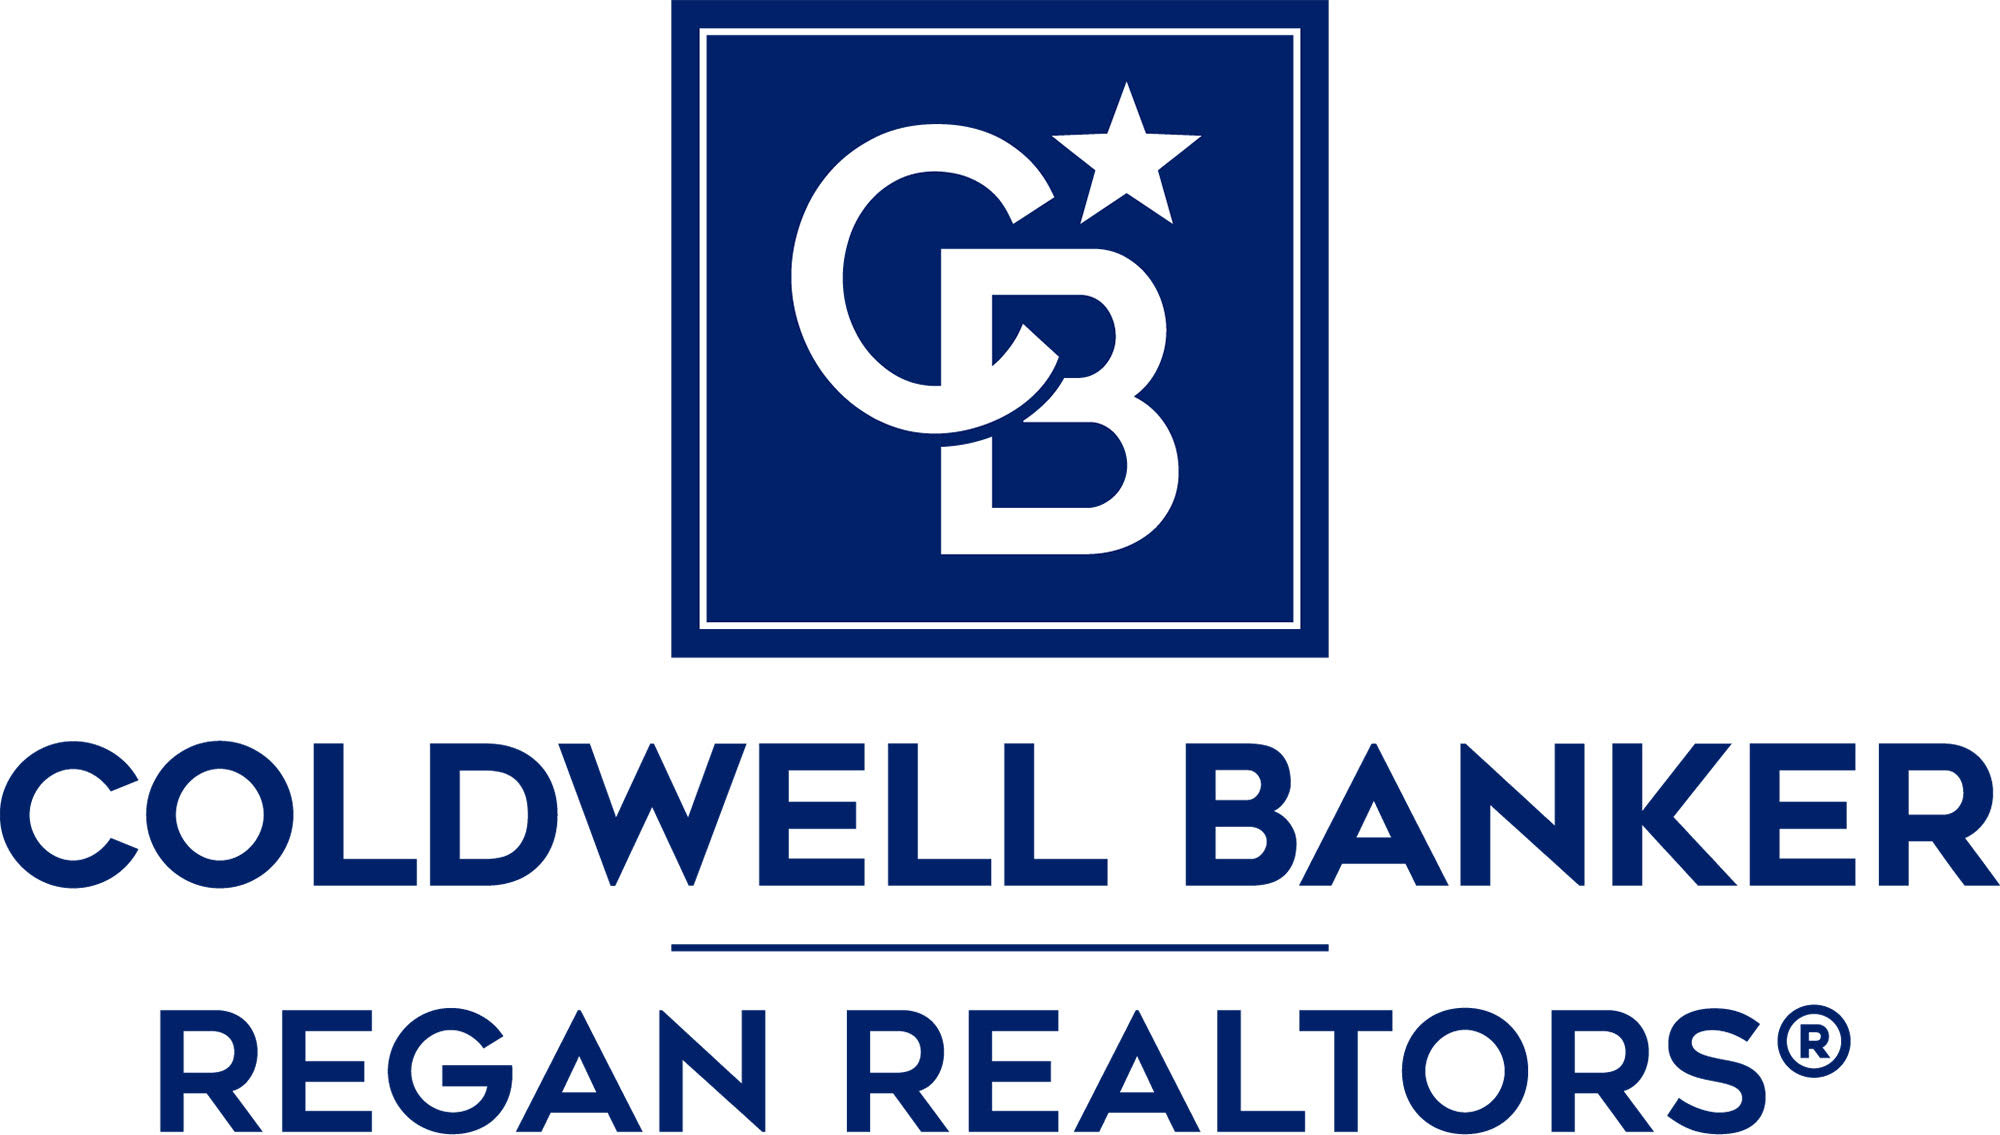 Christian Keisler - Coldwell Banker Regan